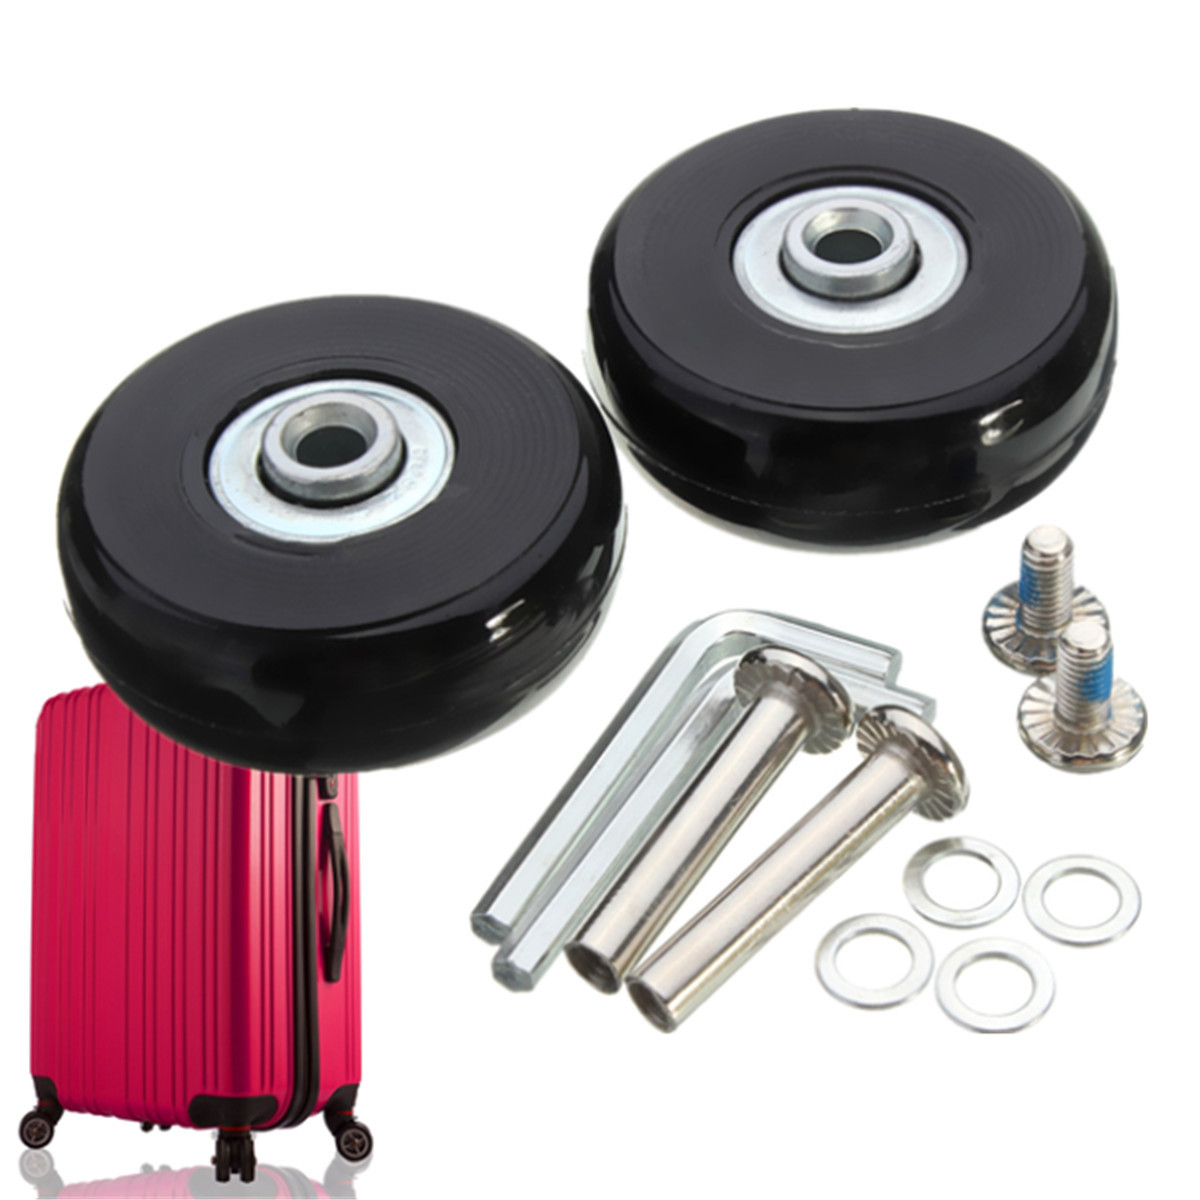 MTGATHER 2 Sets Luggage Suitcase Replacement Wheels Repair OD 50mm Axles ID 6 W 18 Axles 30 Repair Set Trolley Case AccessoriesMTGATHER 2 Sets Luggage Suitcase Replacement Wheels Repair OD 50mm Axles ID 6 W 18 Axles 30 Repair Set Trolley Case Accessories